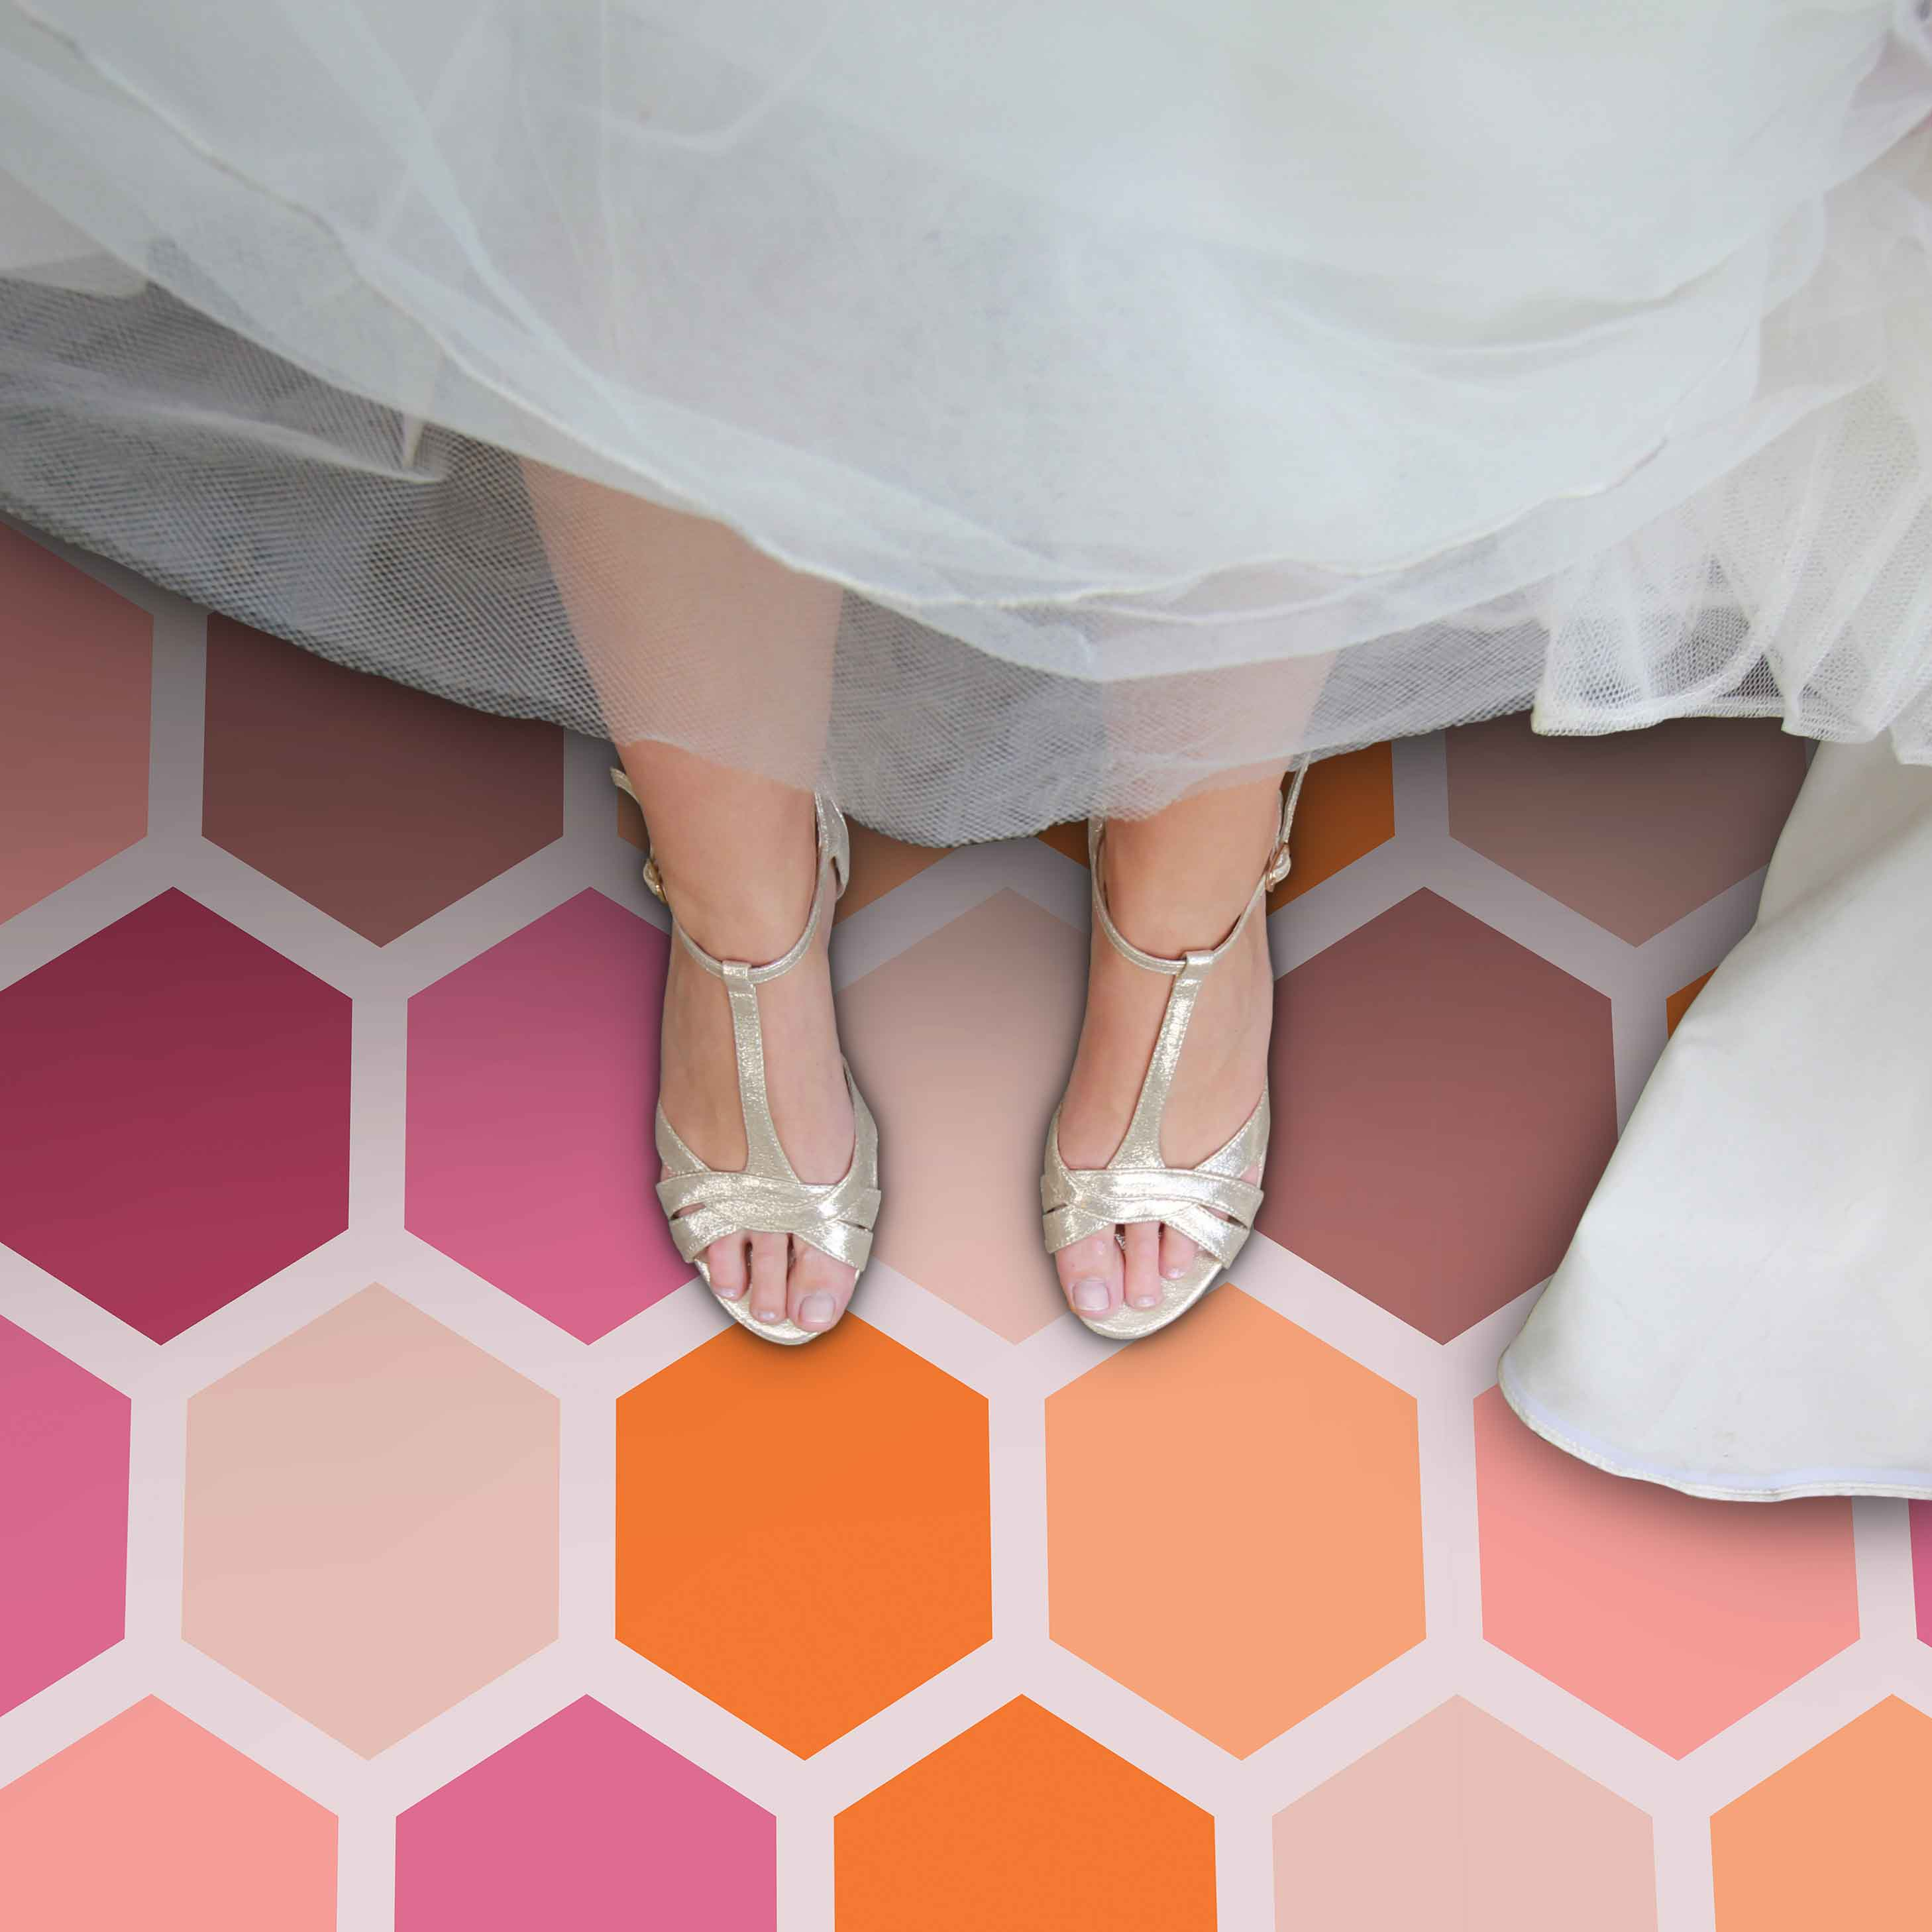 Image of Dials pattern in pastel shades for a wedding aisle runner from forthefloorandmore.com